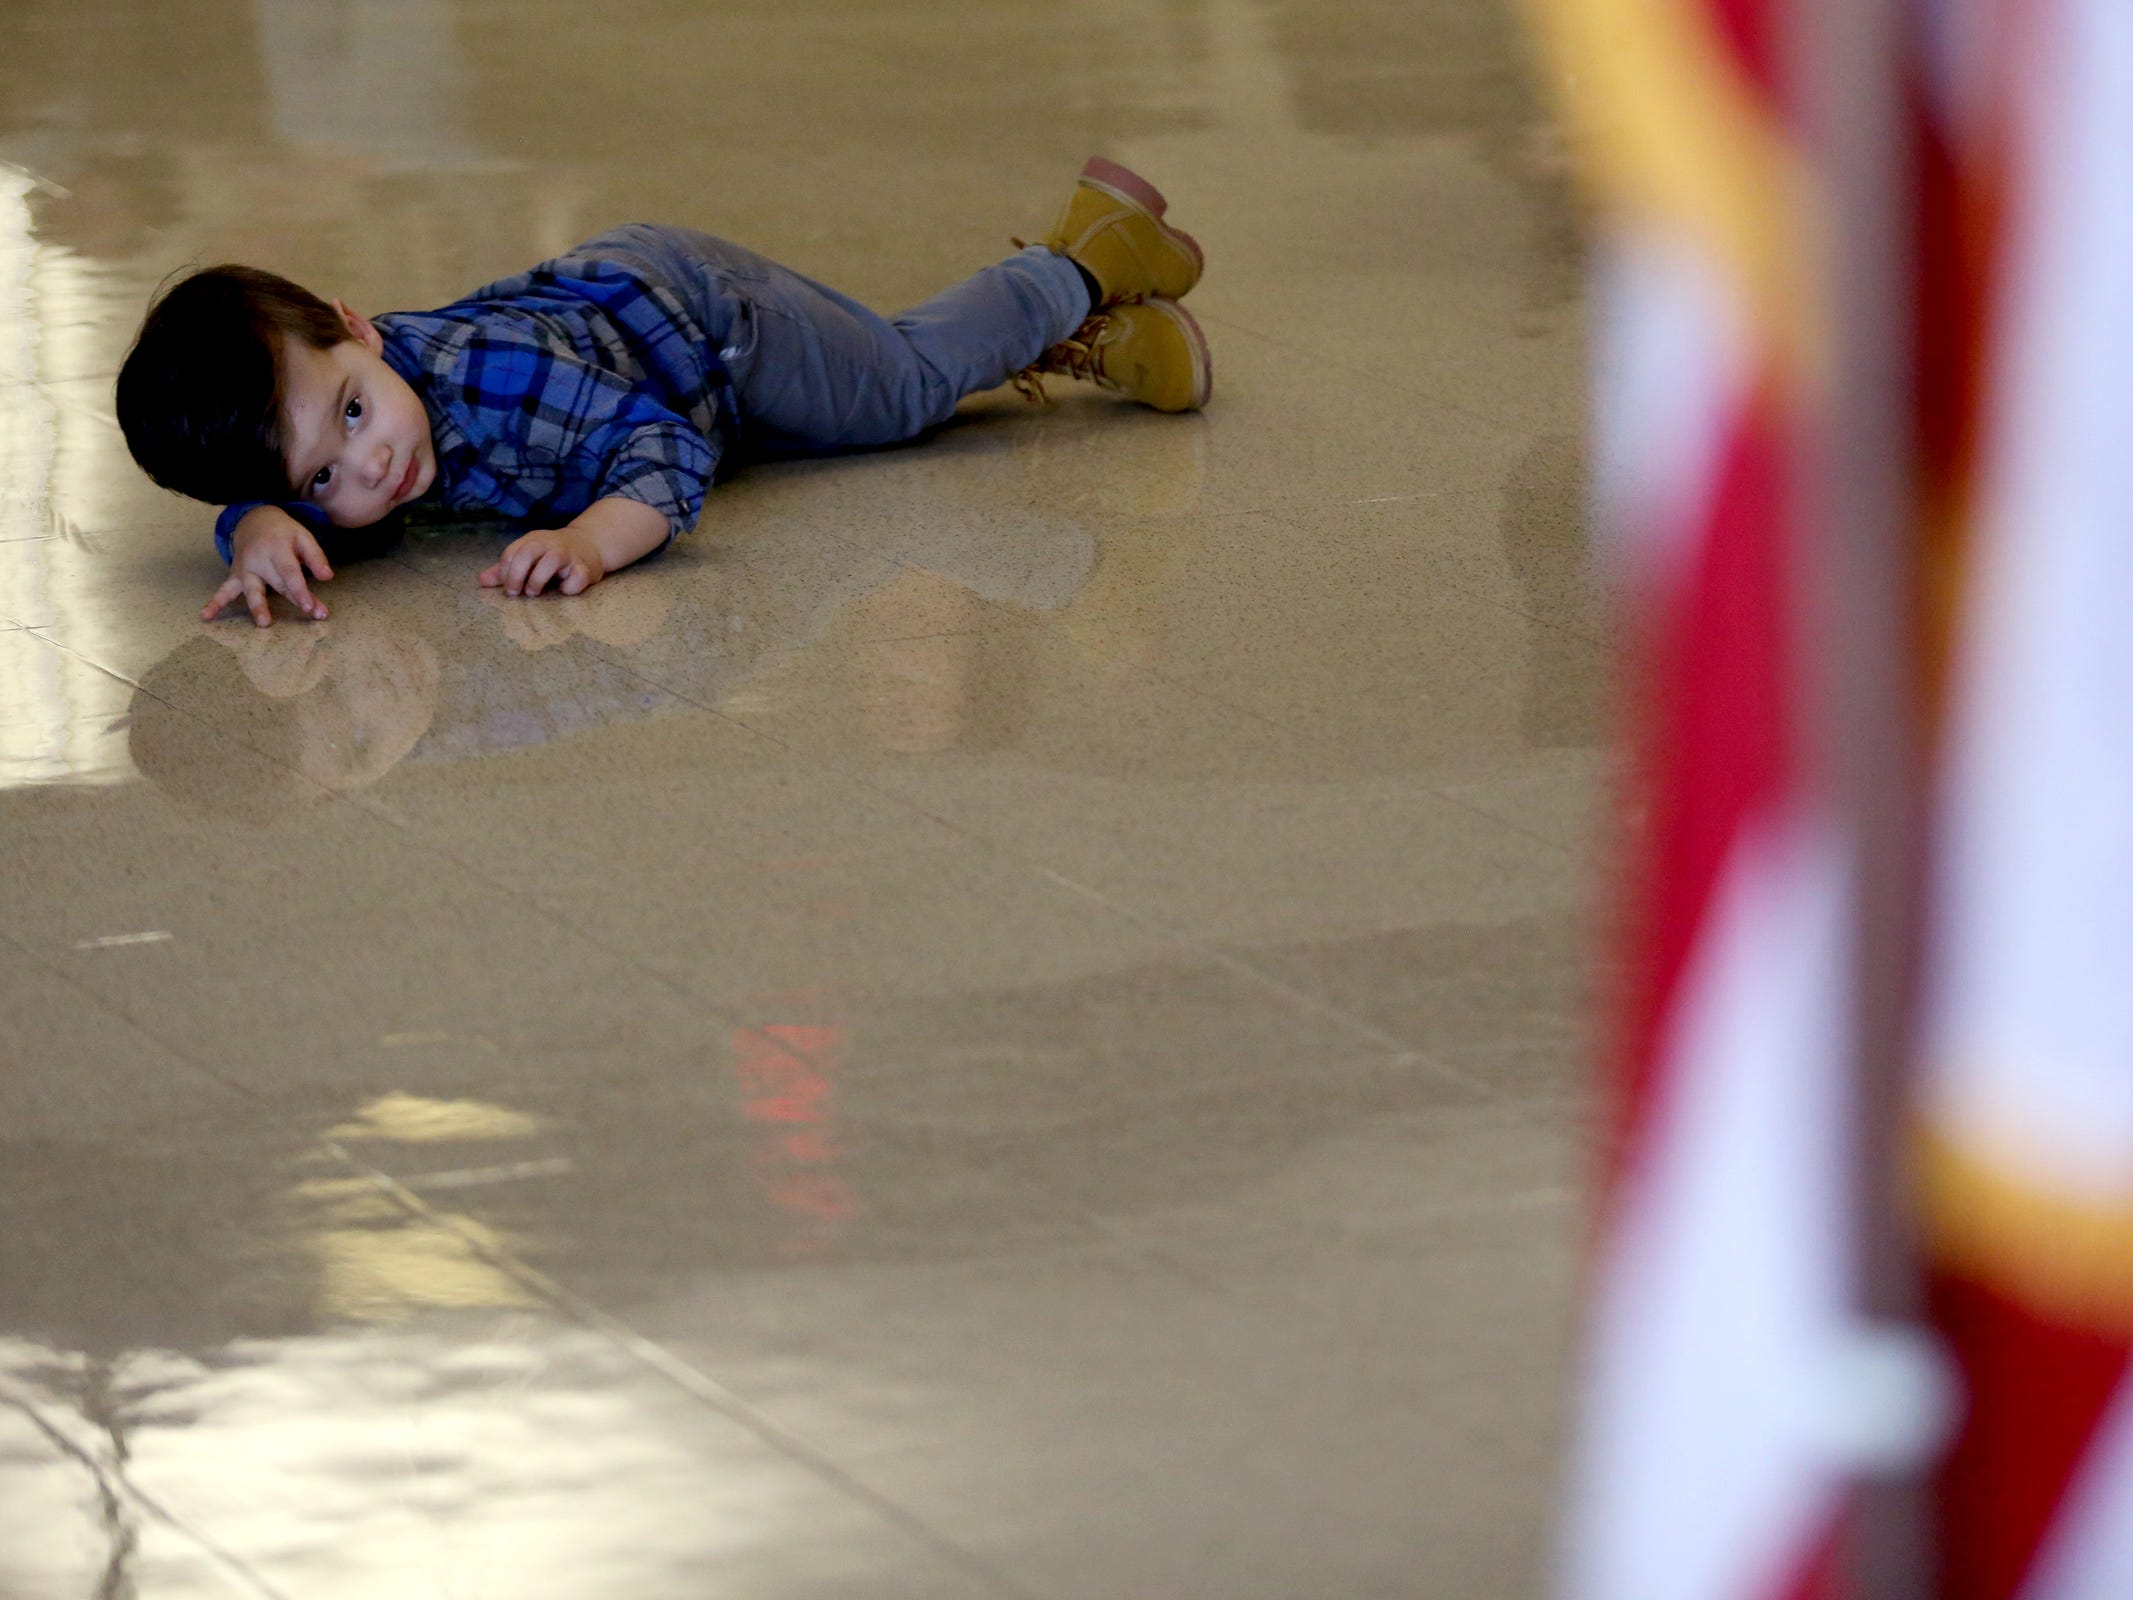 Troy Bell, 2, of Aumsville, lies on the floor as his mother is part of the newest Basic Police Class graduation ceremony at the Department of Public Safety Standards and Training in Salem on March 15, 2019.